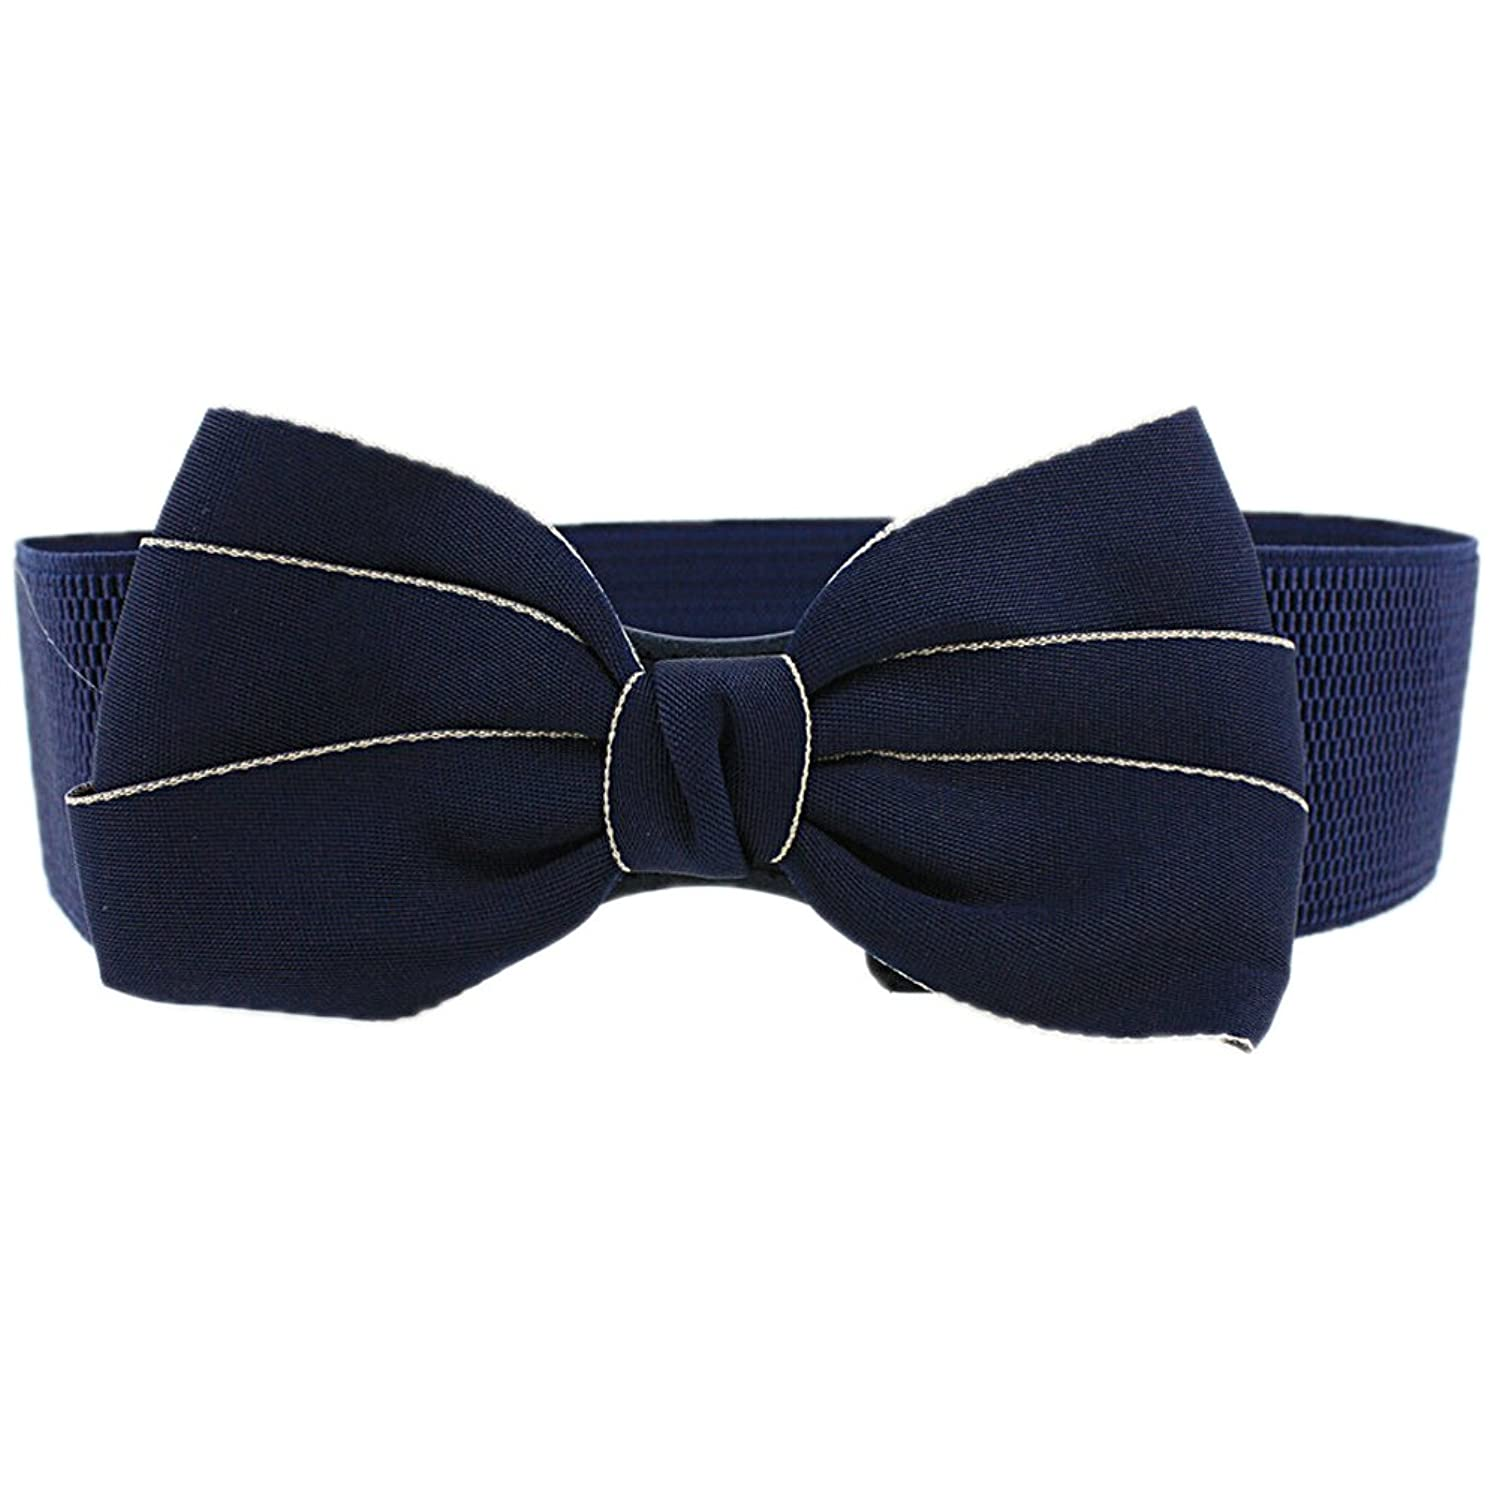 Nanxson(TM) Women's Elegant Cotton Bowtie Buckle Wide Waist Belt PDW0088